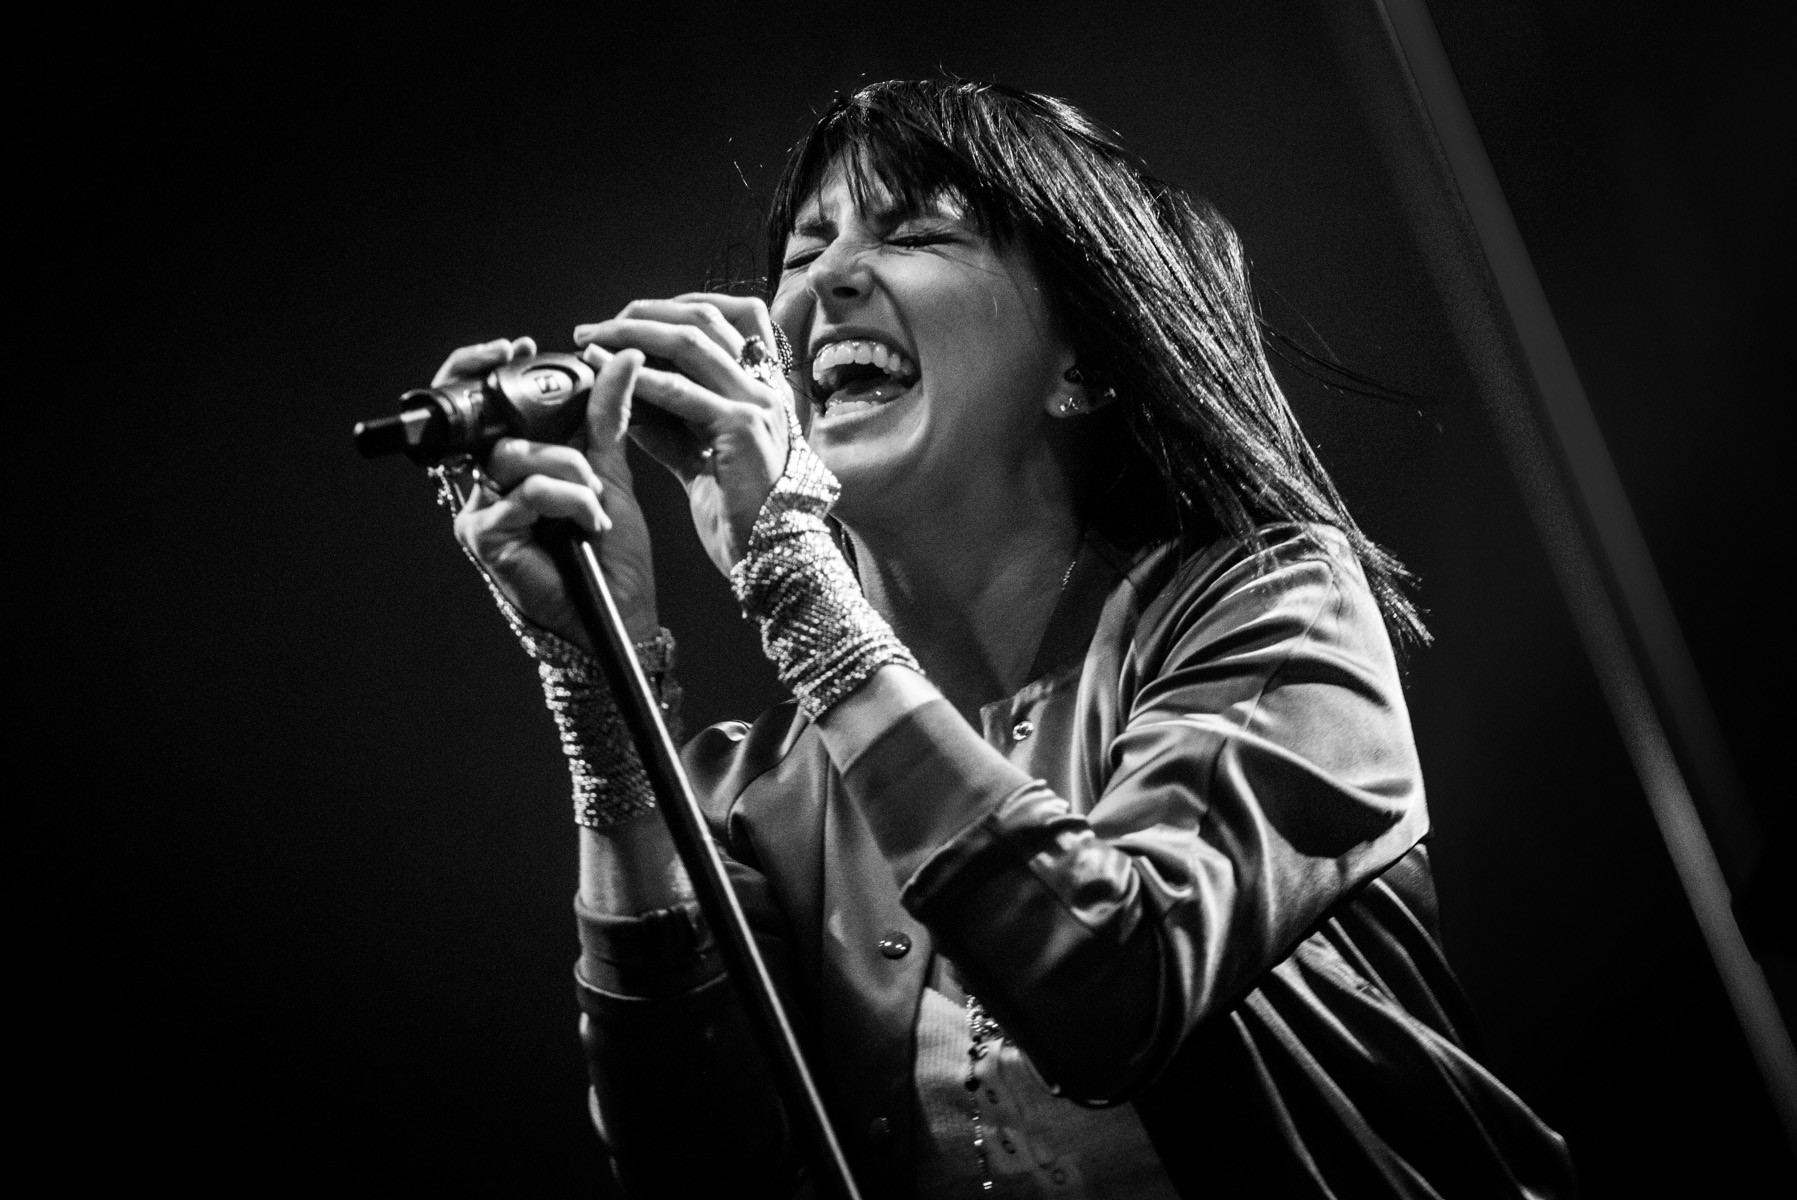 Phantogram at the 2015 McDowell Mountain Music Festival